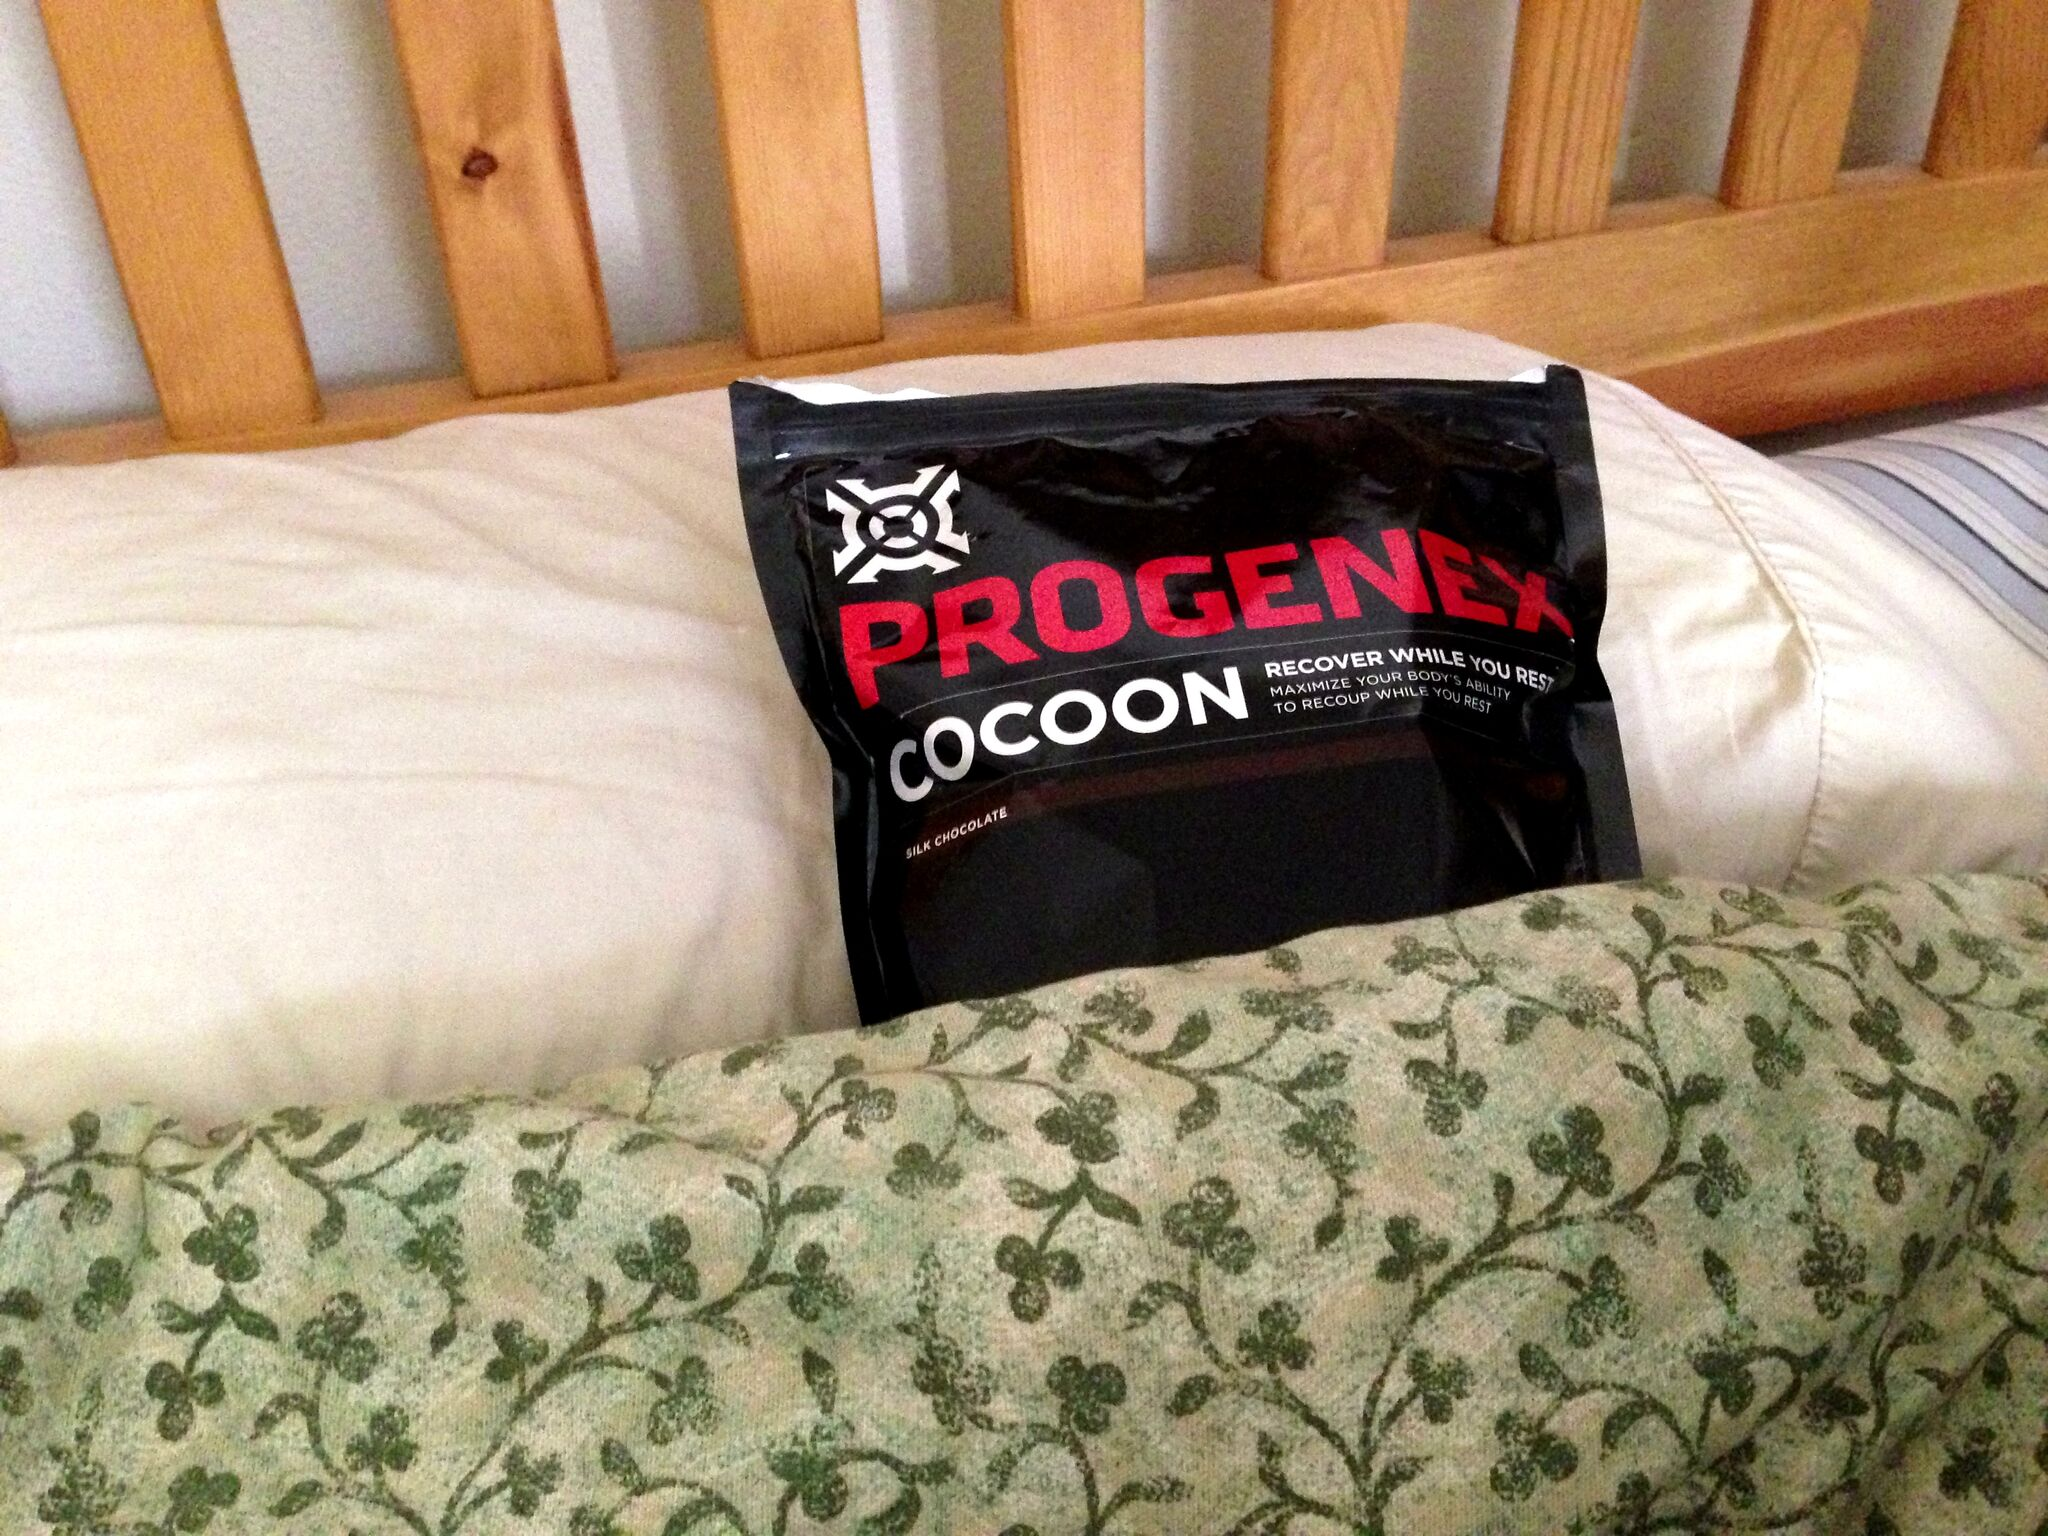 Progenex in my bed